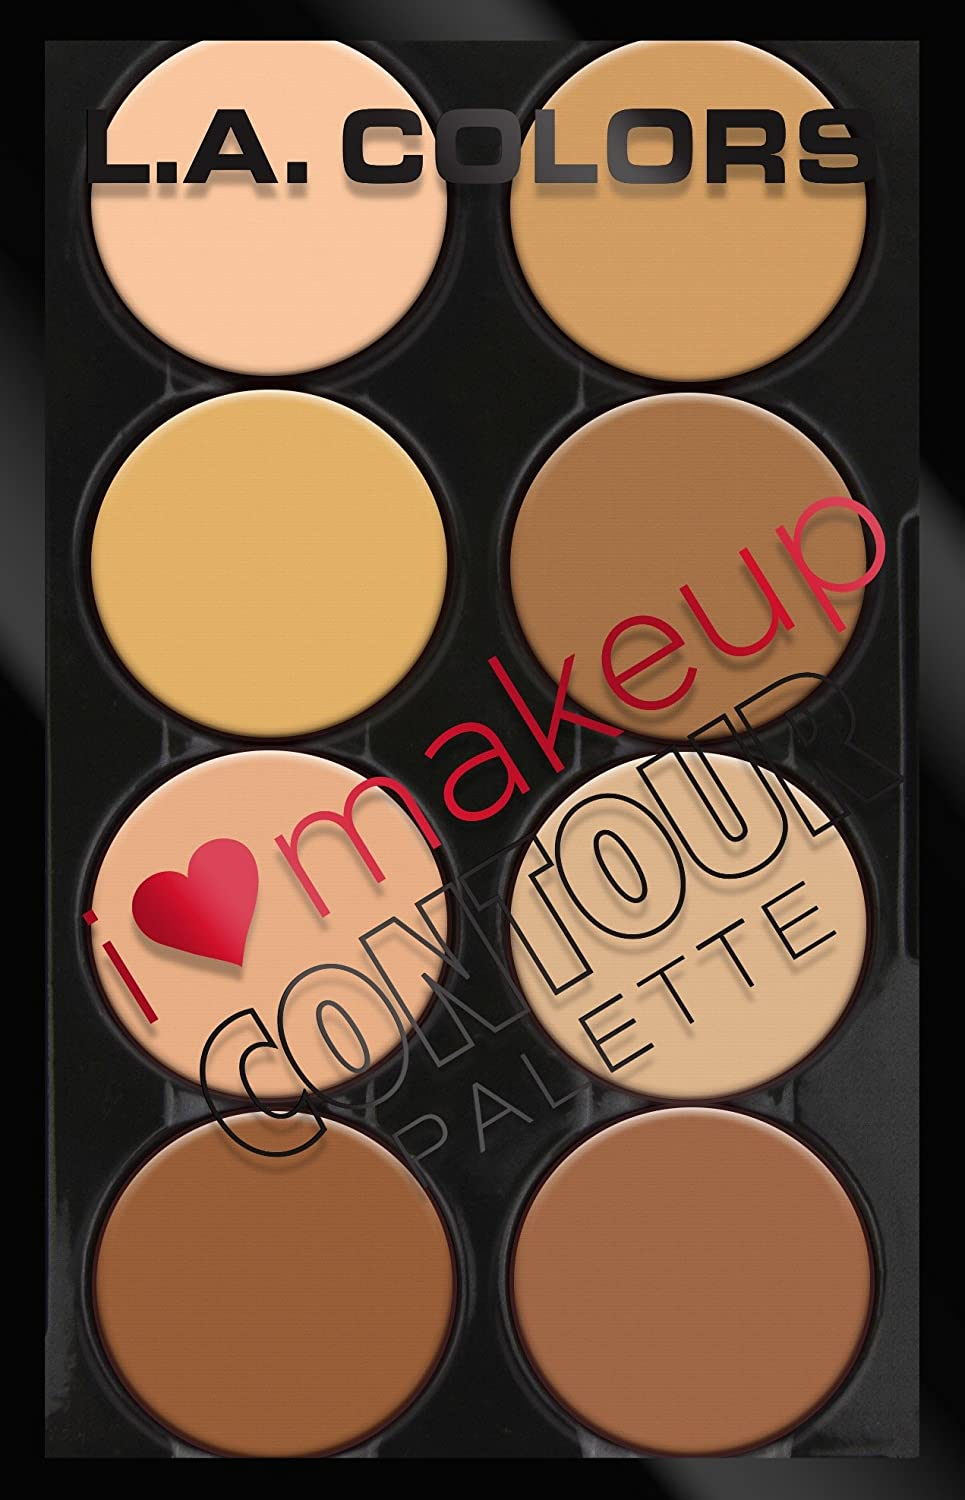 L.A. Colors I Heart Makeup Contour Palette, Light to Medium, 1.04 Ounce